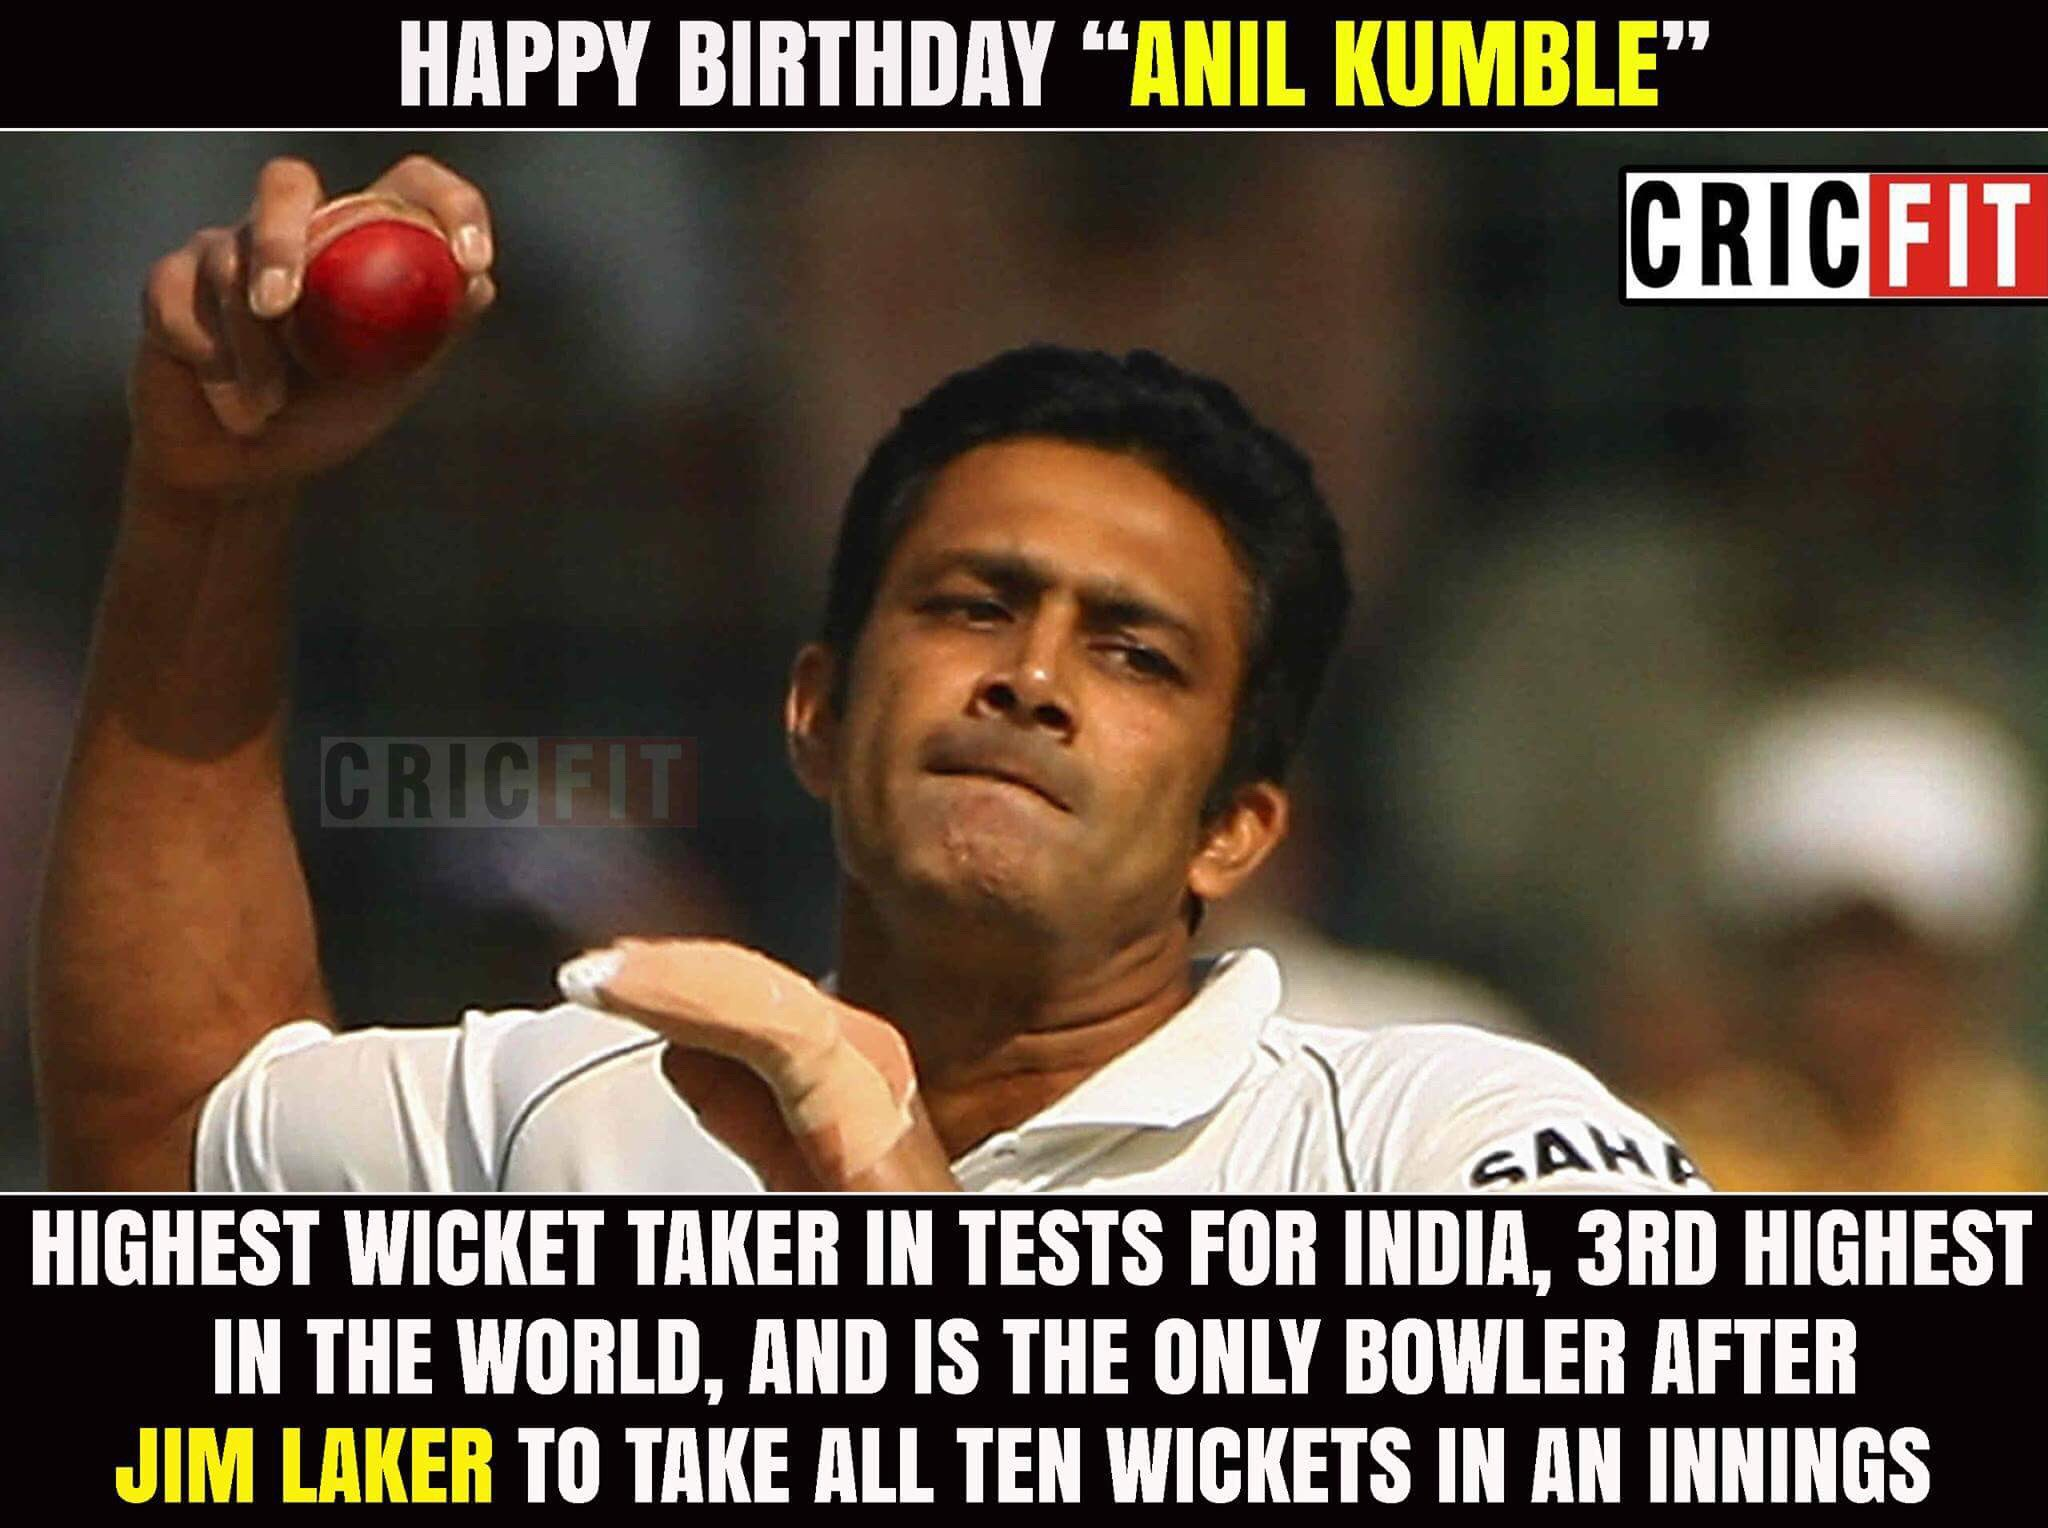 Happy Birthday Anil Kumble!